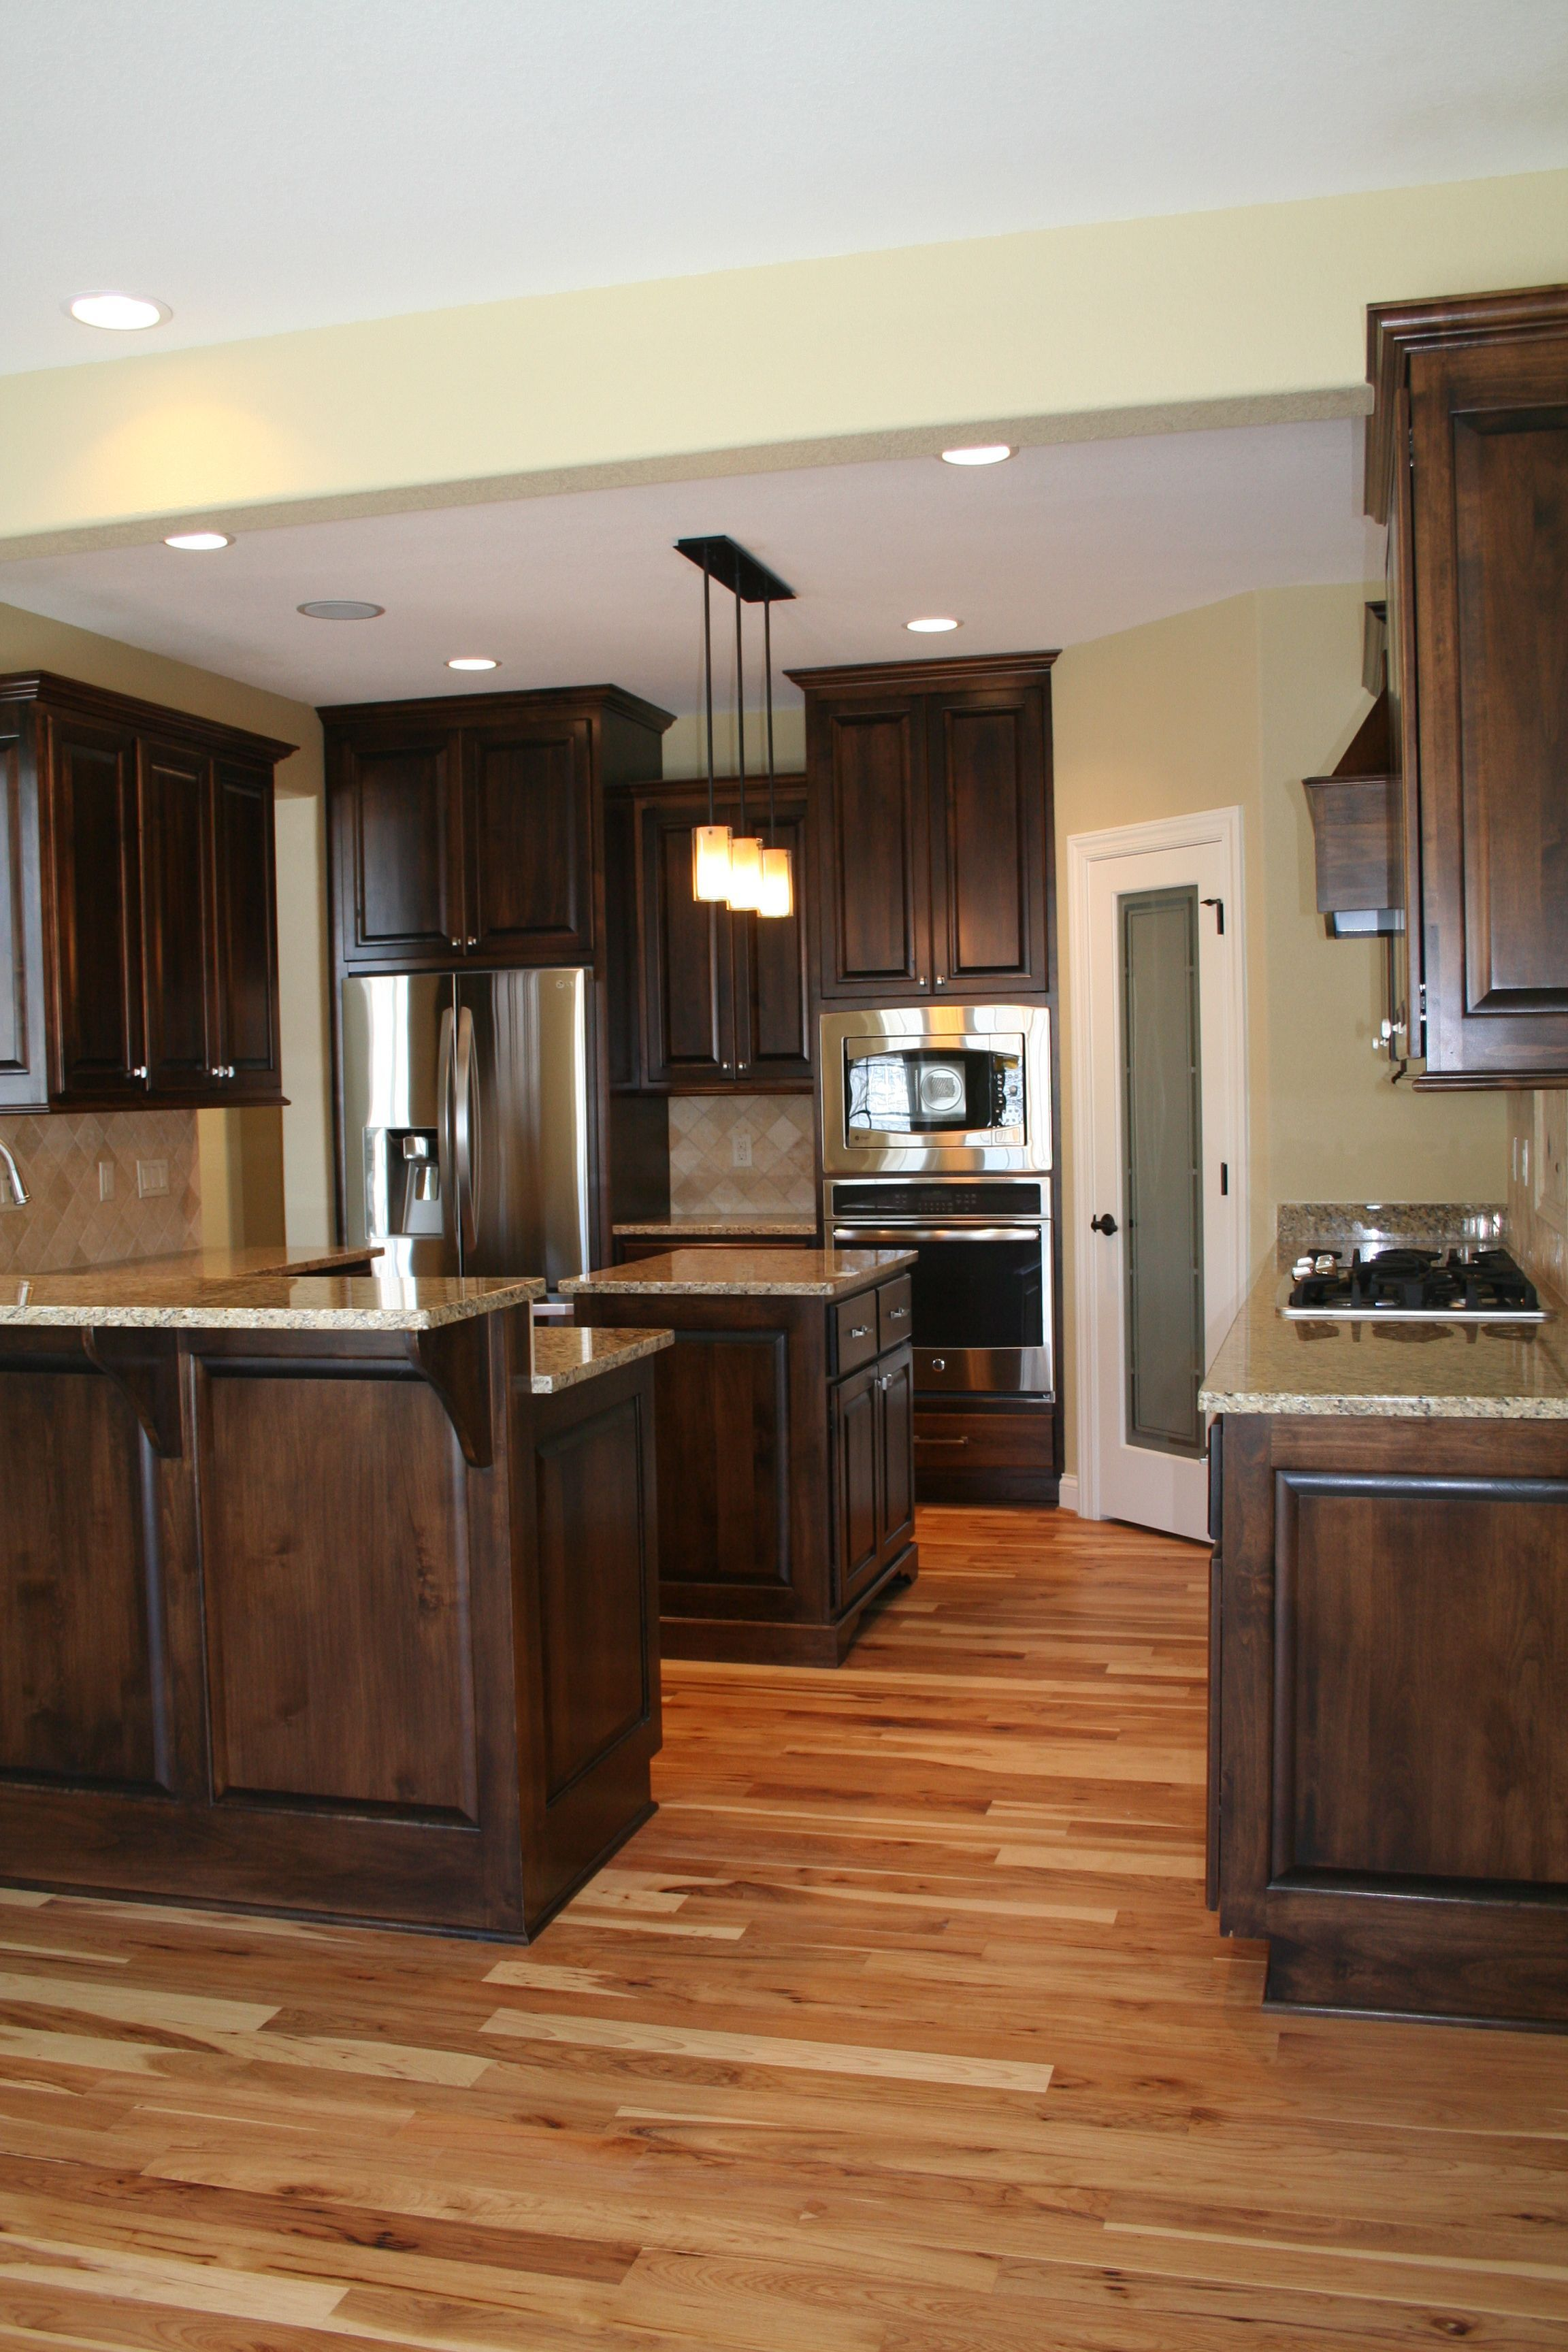 Alder wood stainless steel appliances and